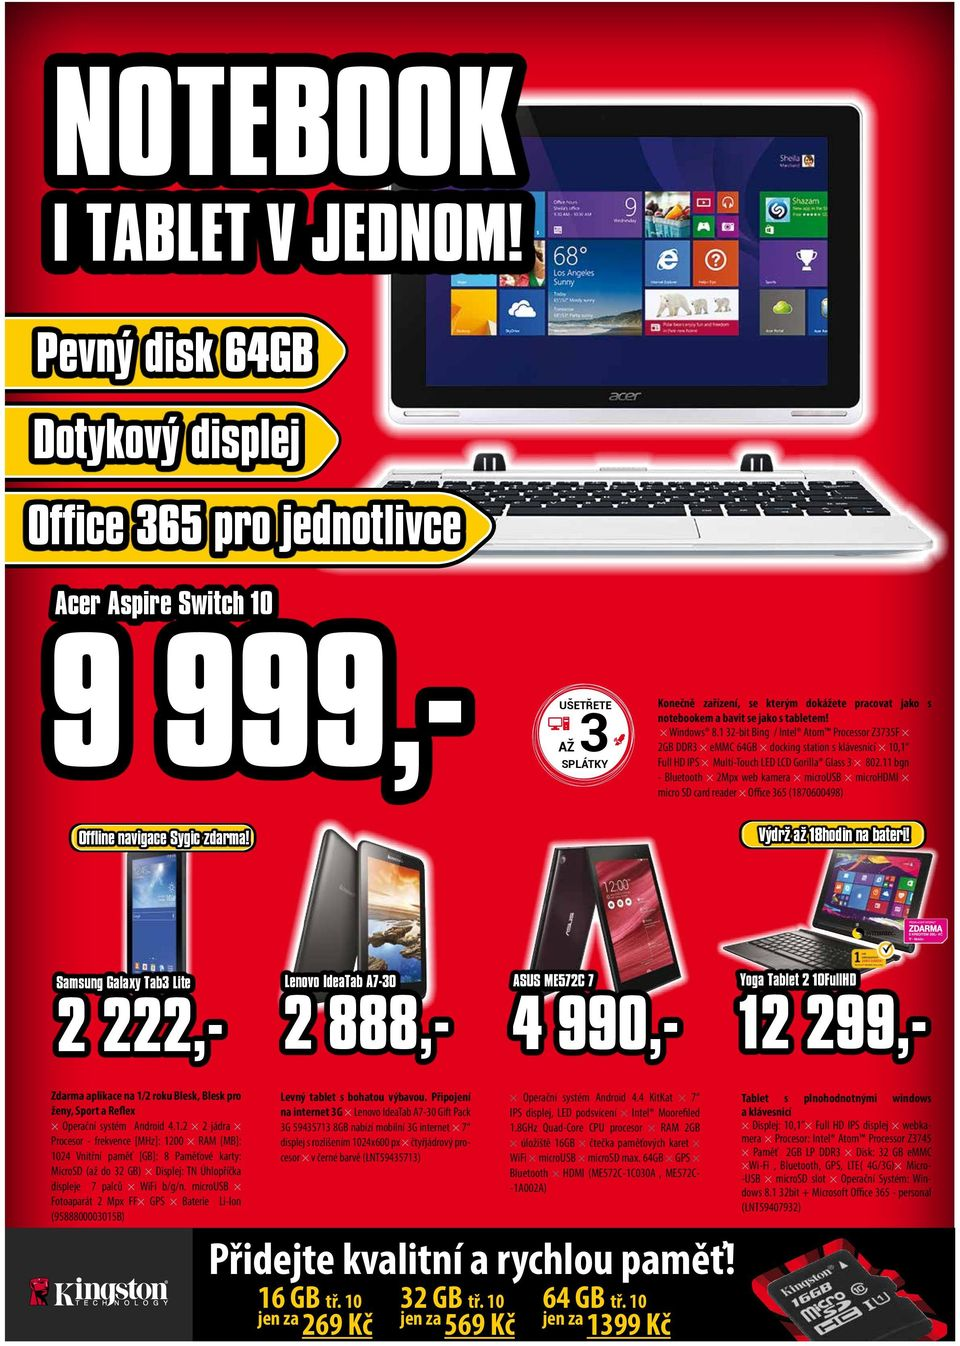 tabletem! Windows 8.1 32-bit Bing / Intel Atom Processor Z3735F 2GB DDR3 emmc 64GB docking station s klávesnicí 10,1 Full HD IPS Multi-Touch LED LCD Gorilla Glass 3 802.